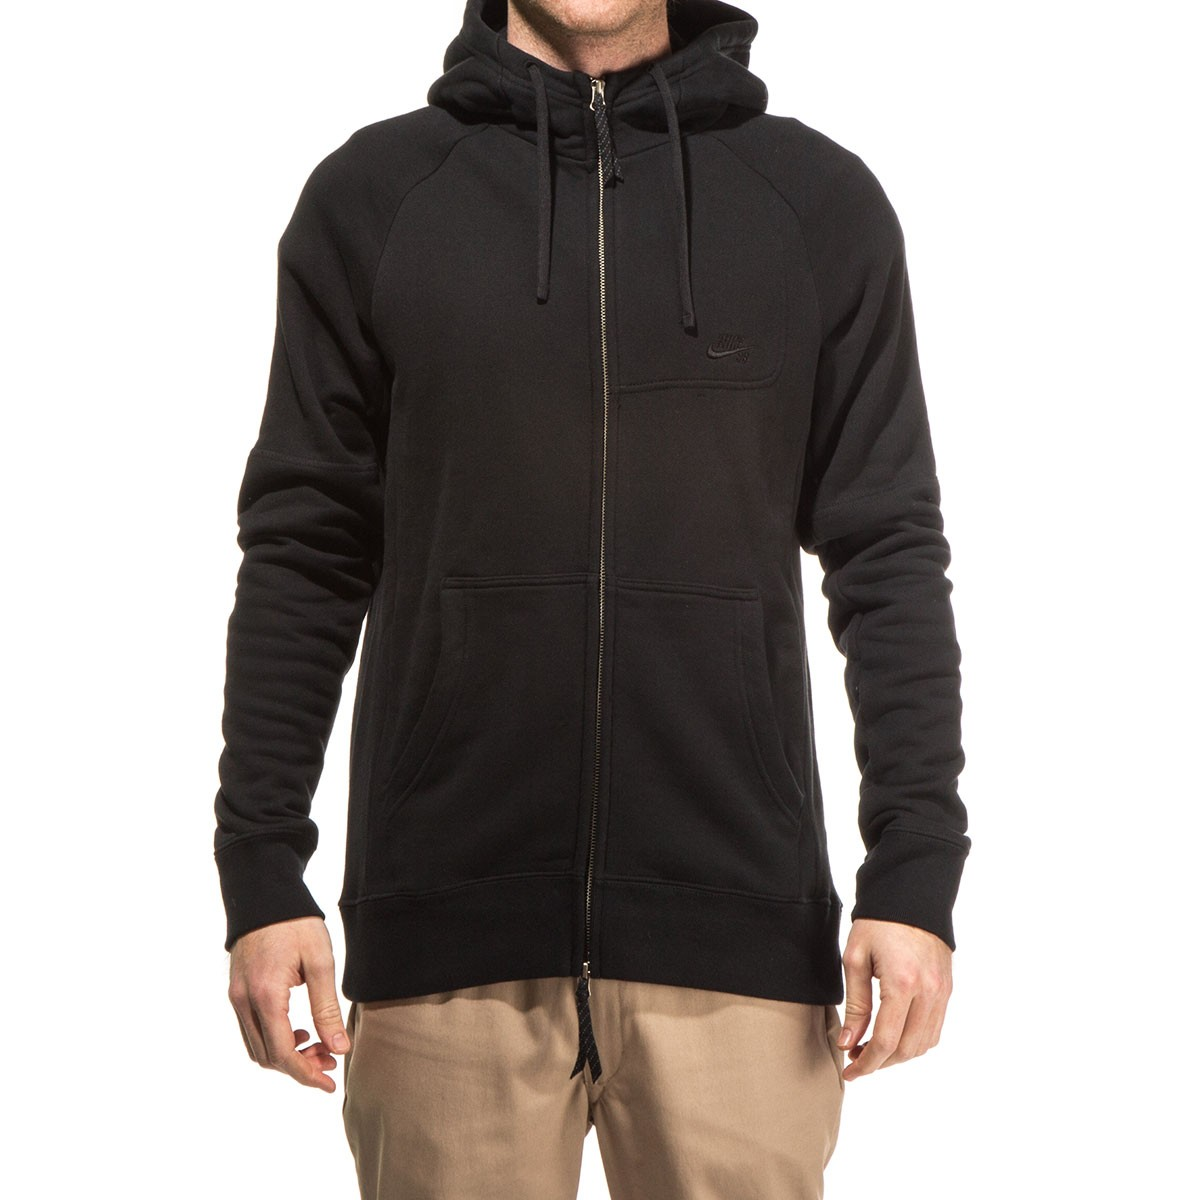 Nike SB Everett Graphic Full Zip Hoodie - Black/Black/White